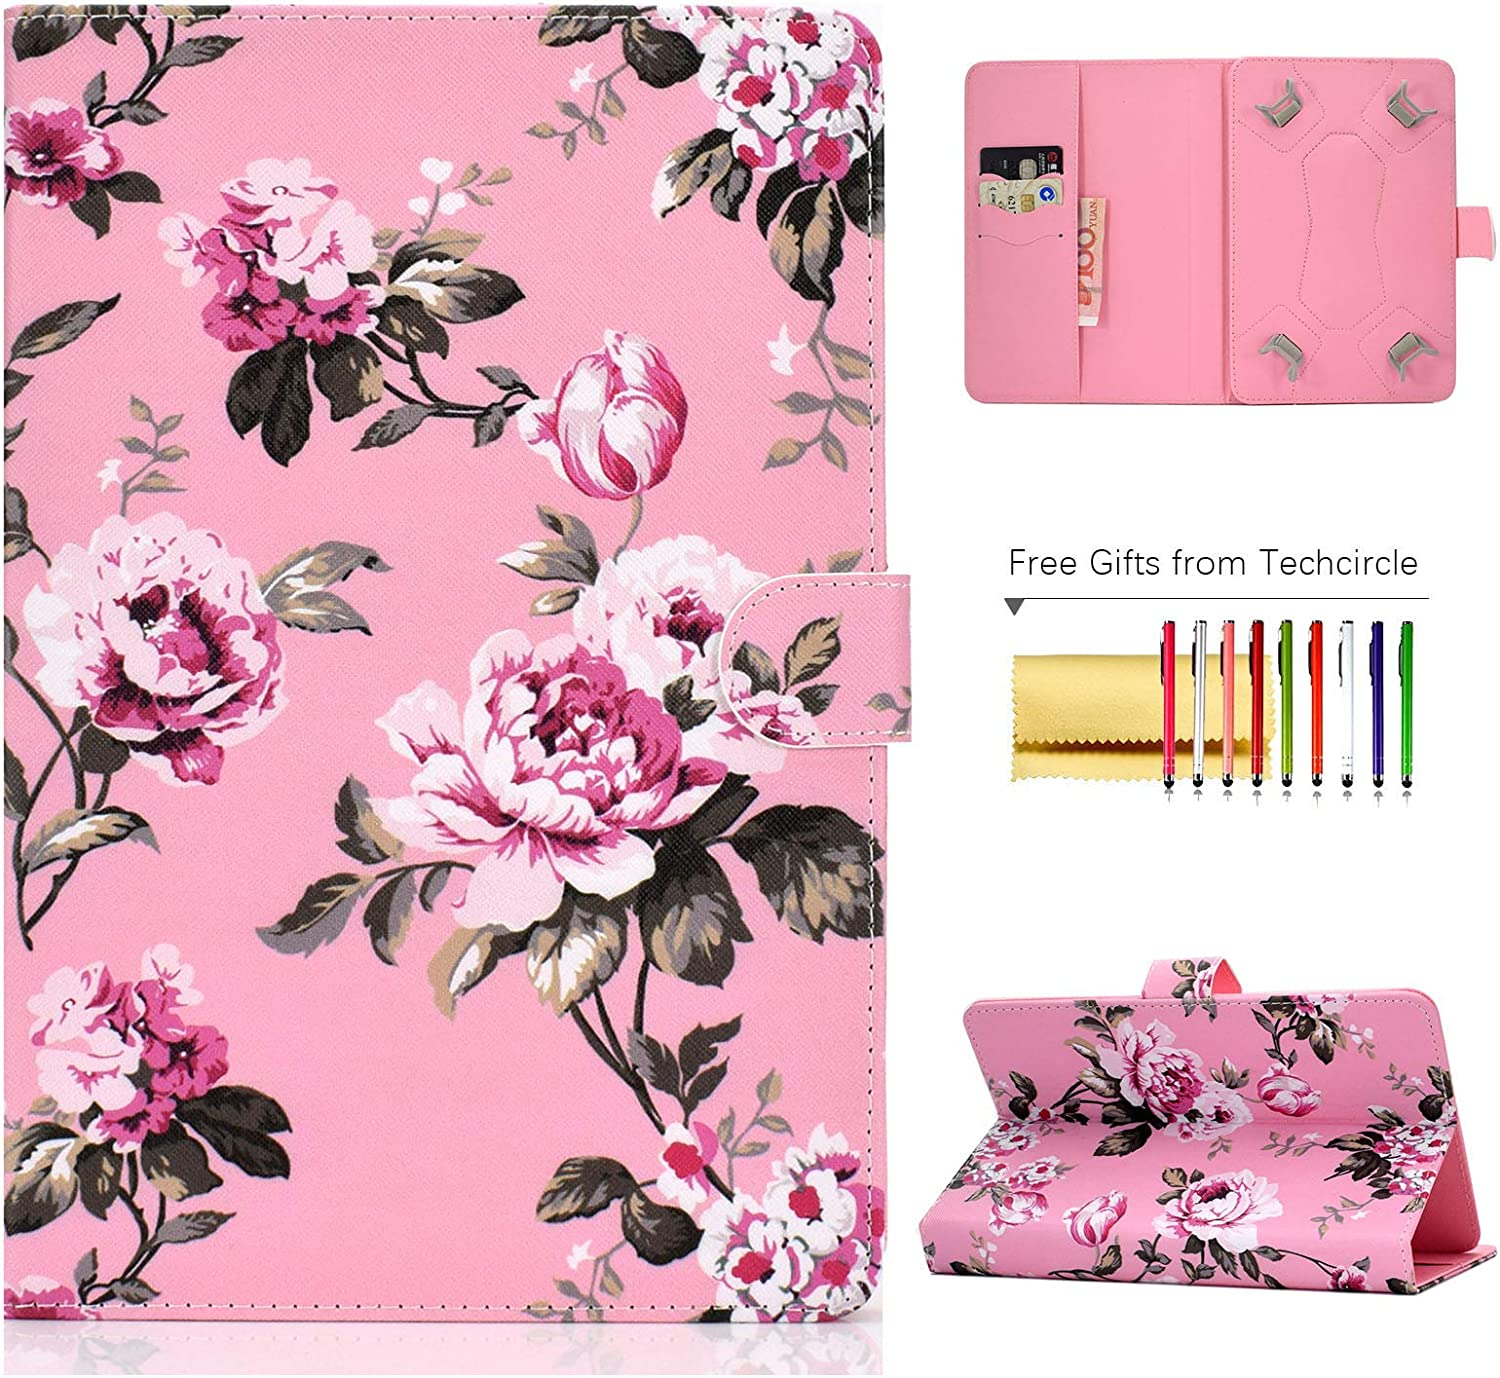 "Universal Folio Cover for 8 inch Tablet, Techcircle Stand Wallet Case for LG G-Pad F2/X2 8.0, Fire HD 8, Galaxy Tab 8.0"", iPad Mini 1/2/3/4/5, Huawei MediaPad 8.4"", ASUS ZenPad 8.0"", Pink Flowers"